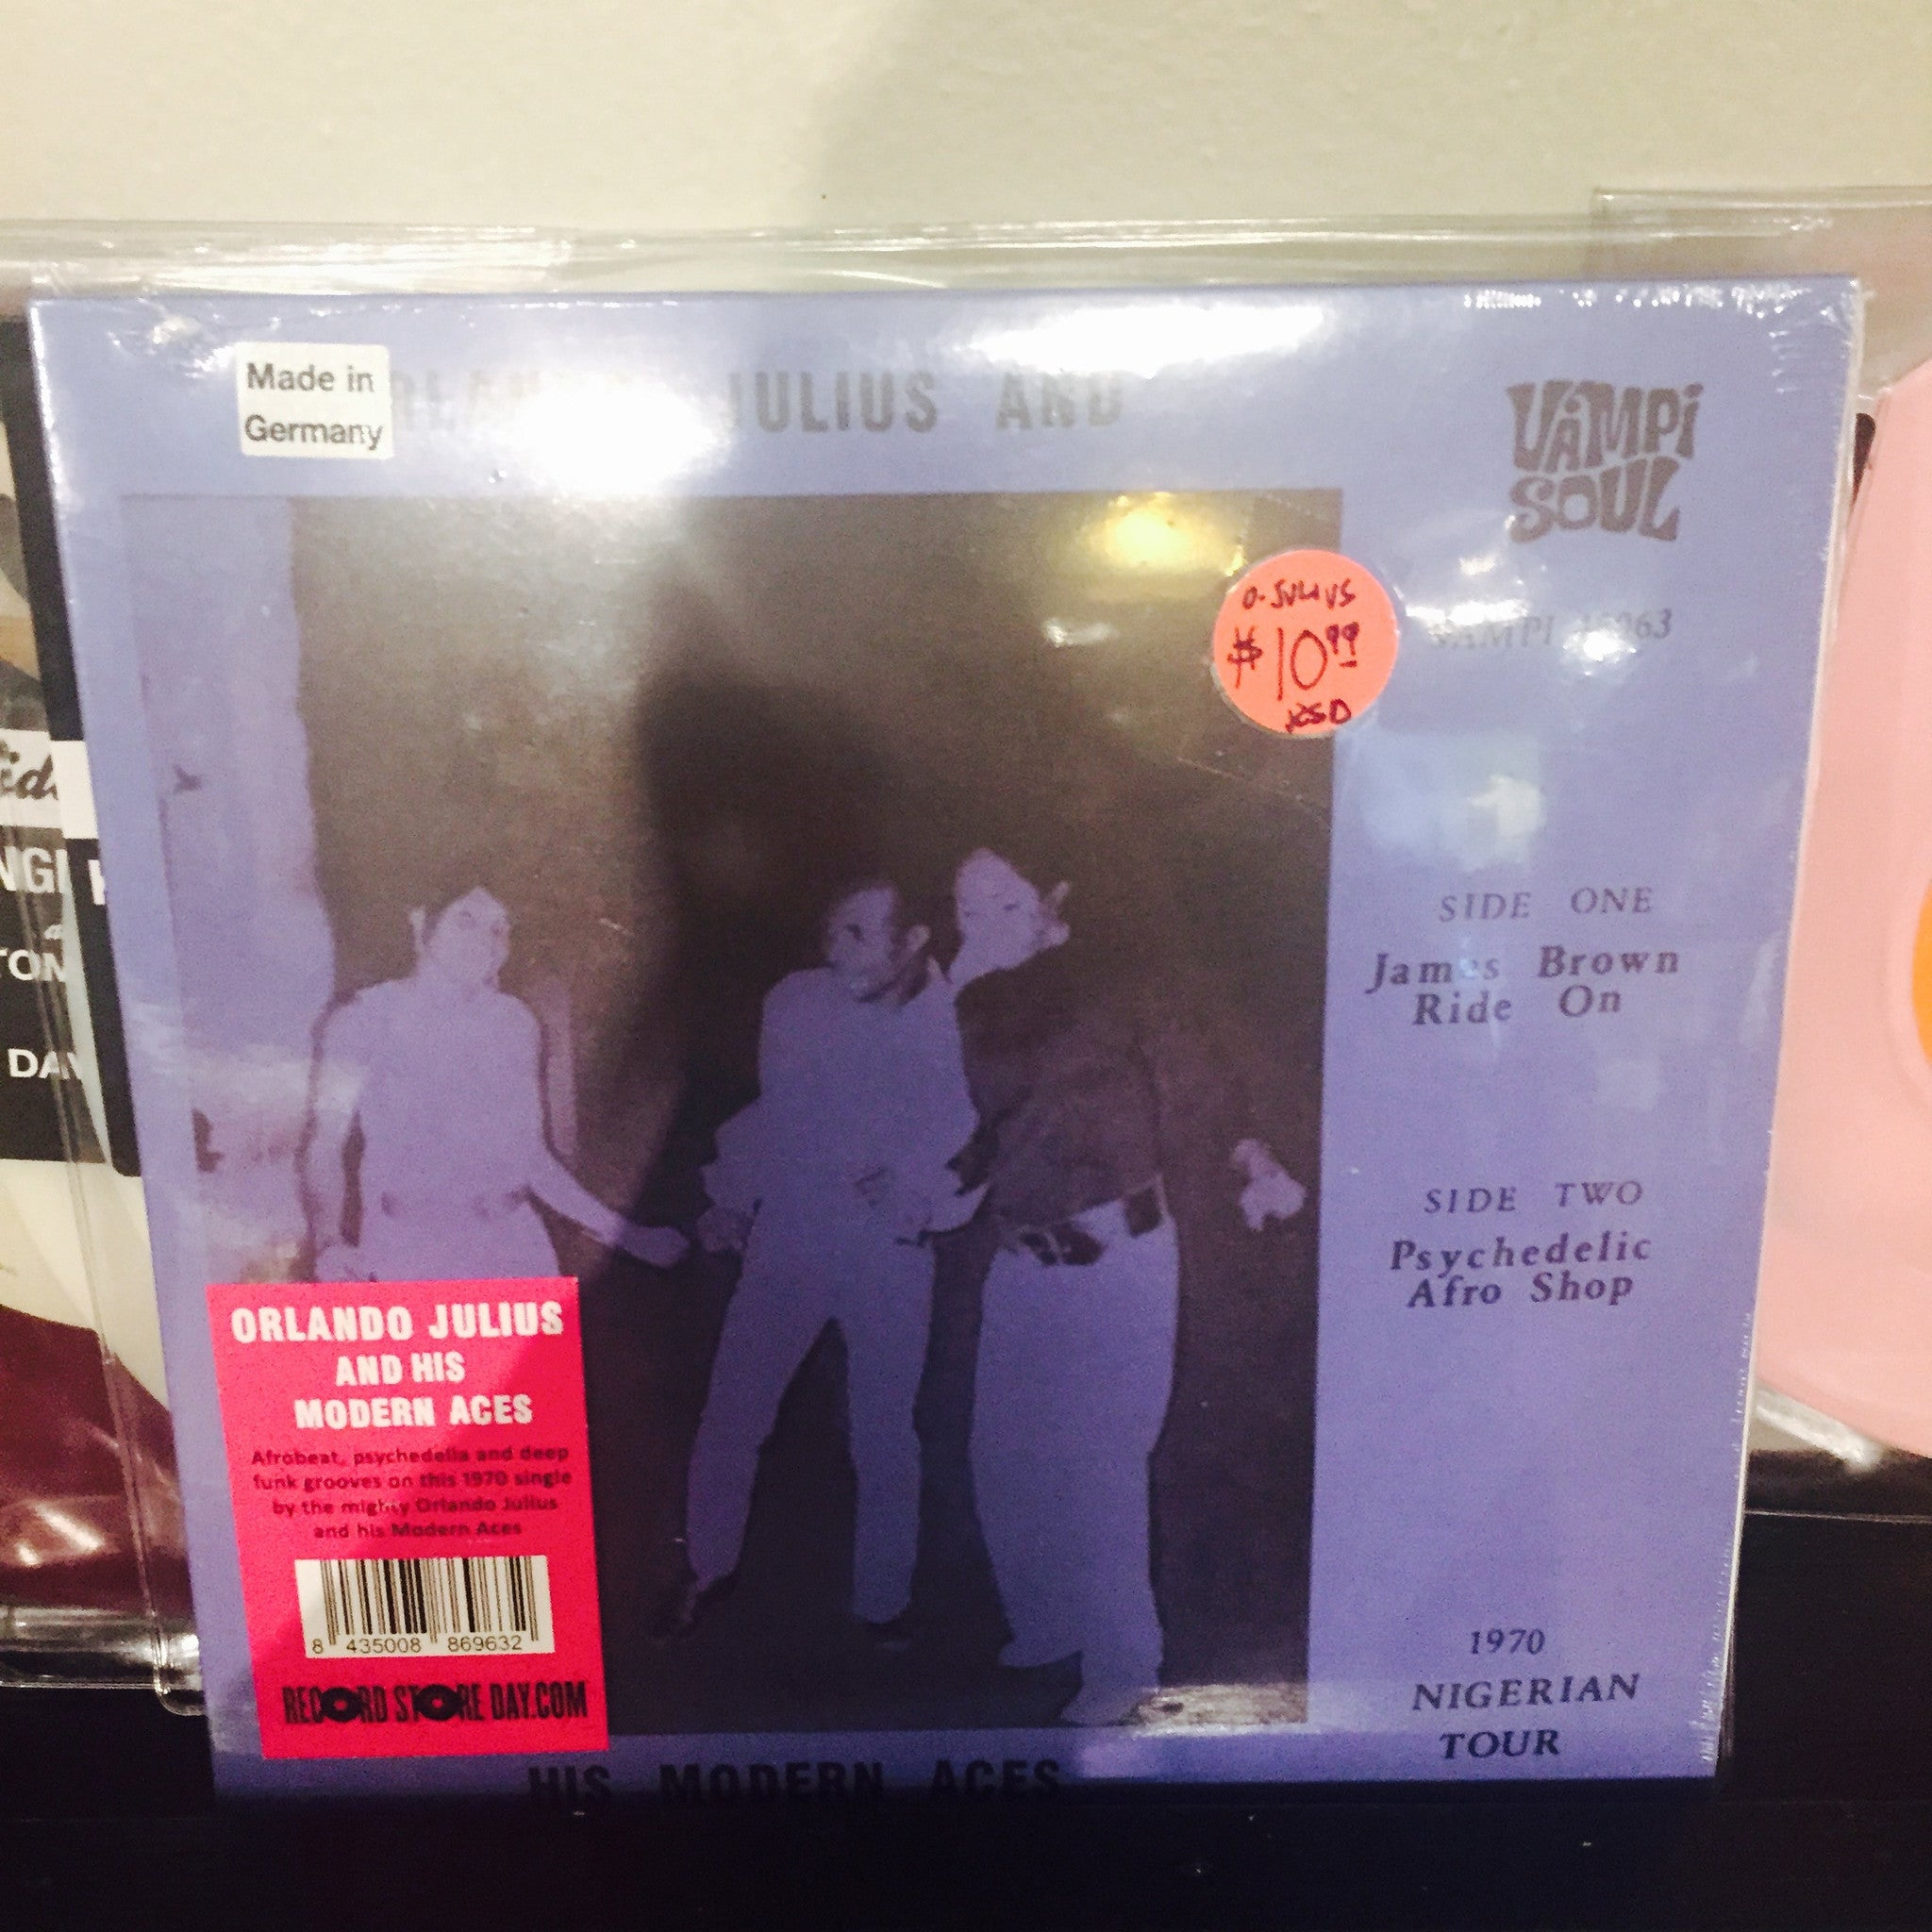 "Orlando Julius and His Modern Aces - James Brown Rides On 7"" (RSD 2015)"